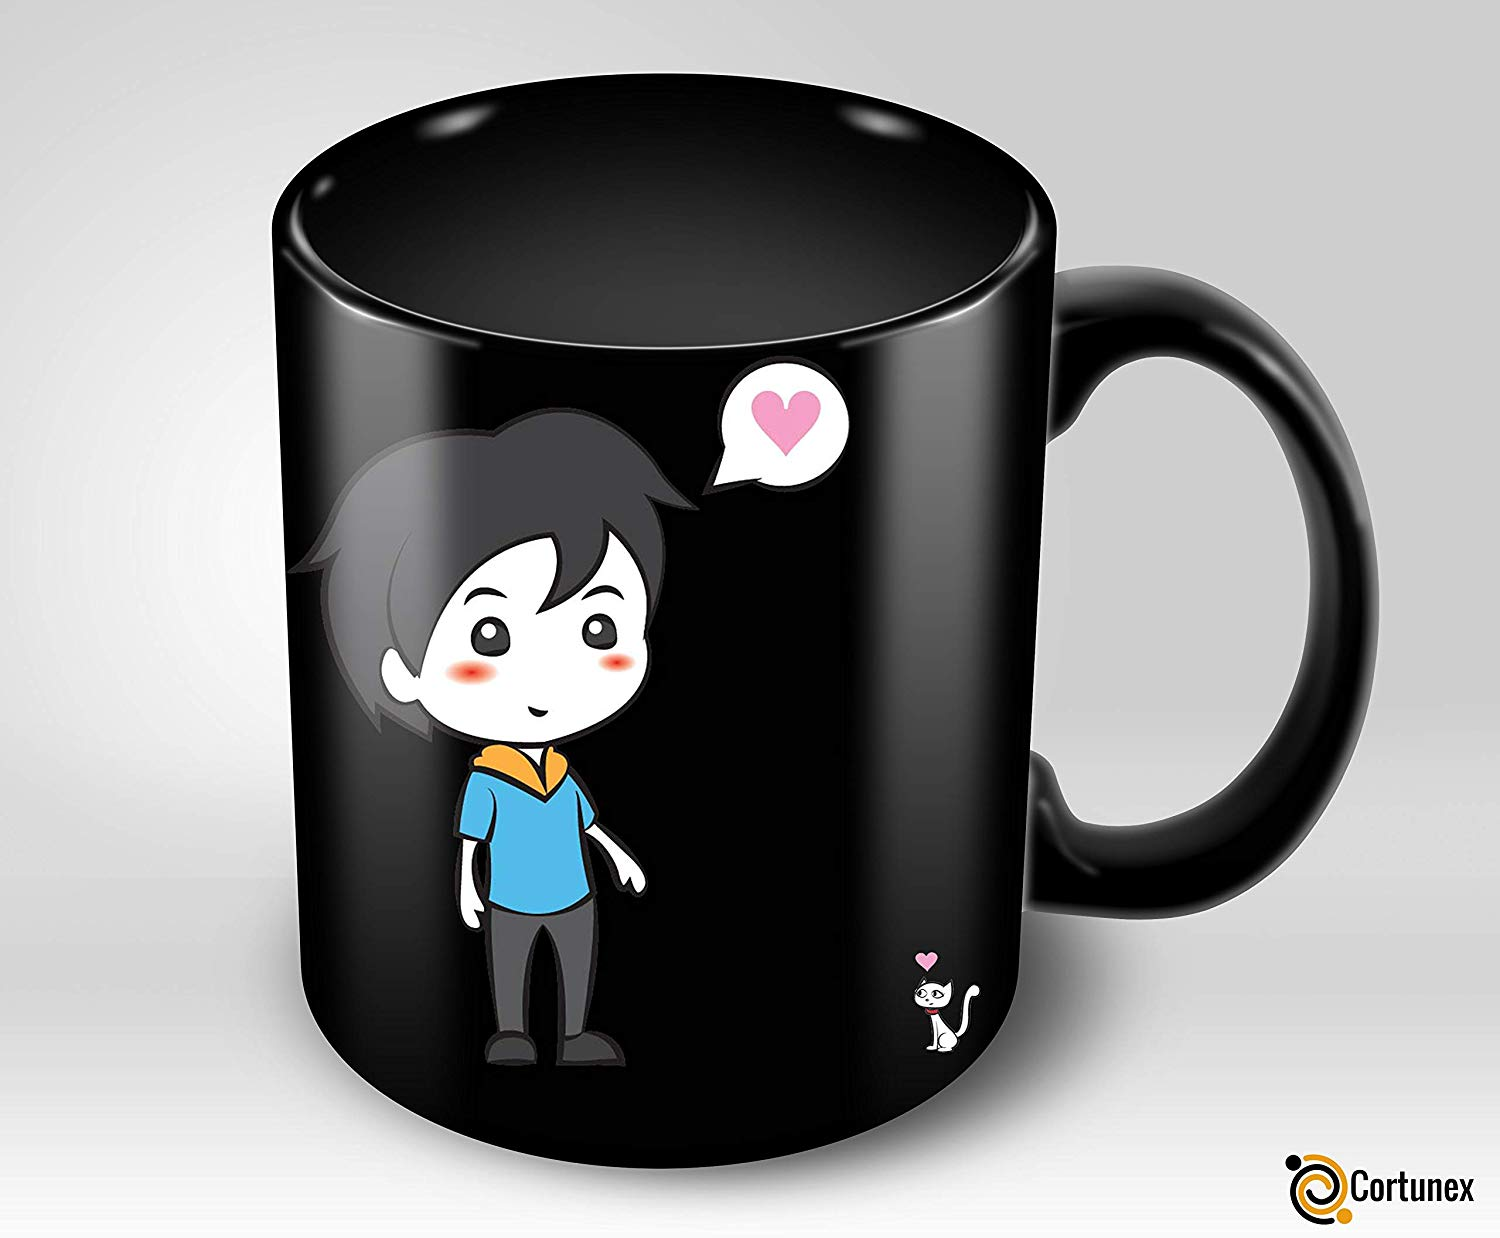 Heat Sensitive Mug Color Changing Coffee Mug Funny Coffee Cup Lovely Cartoon Couples Design Birthday Gift Idea F B07D21XCT3 2